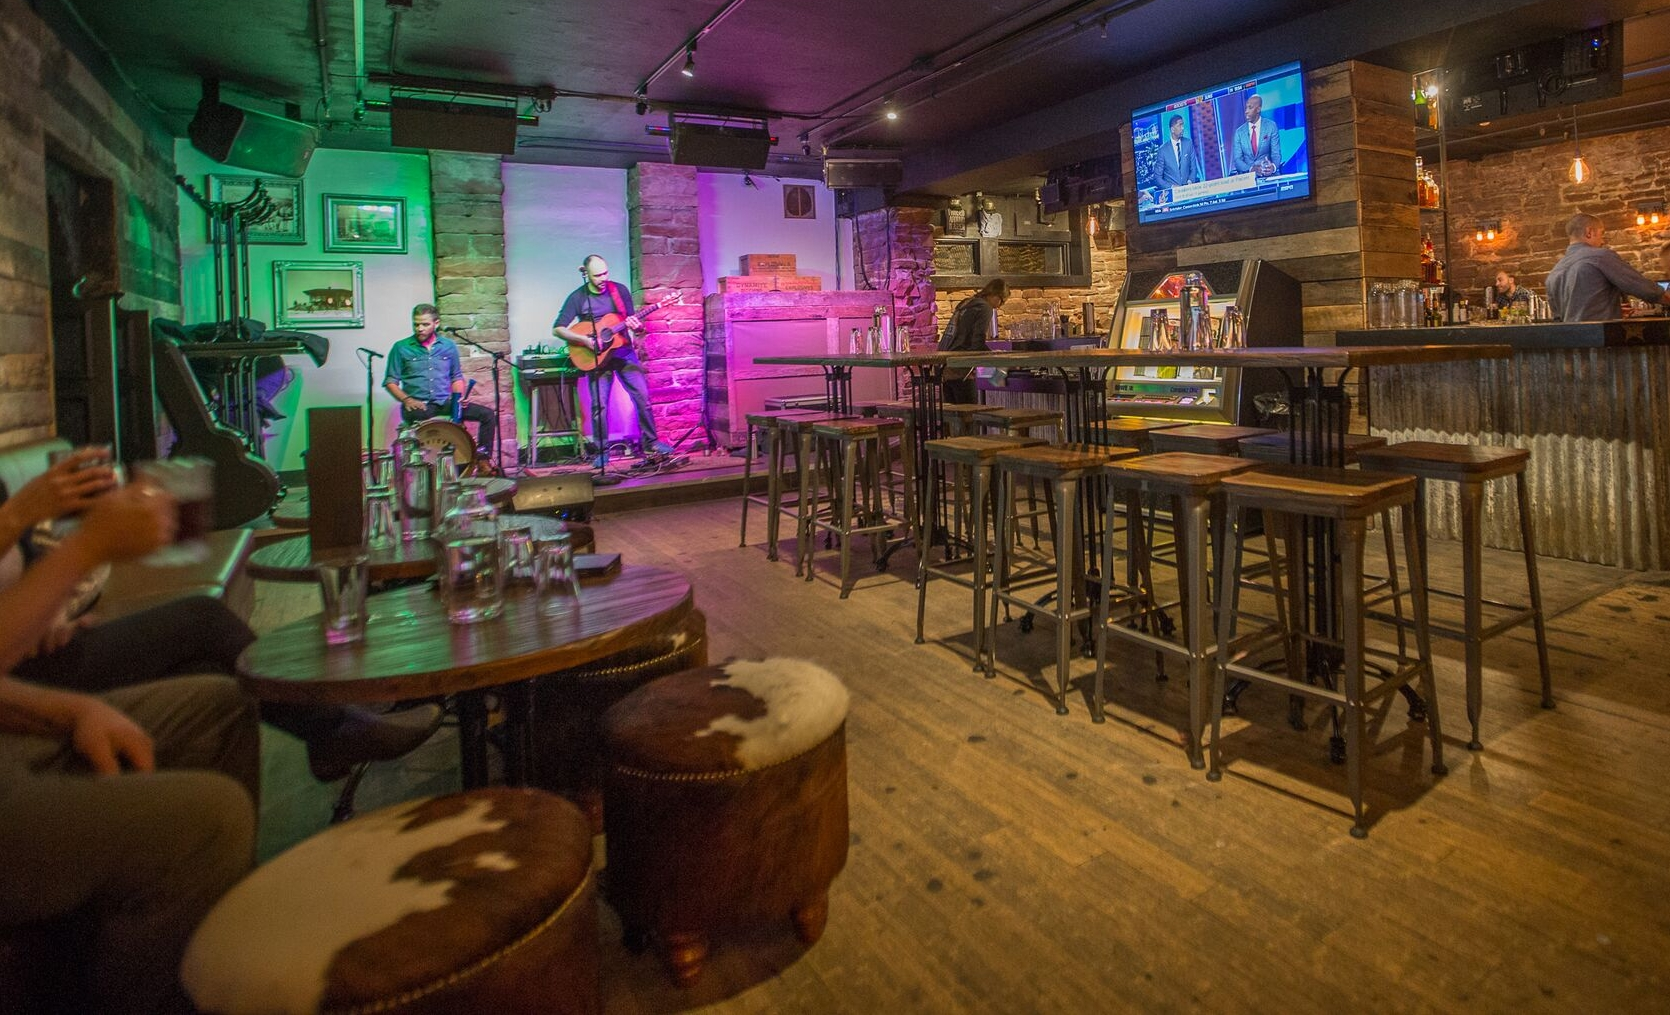 Check our Calendar for live music! We put on a show apres ski or late night.